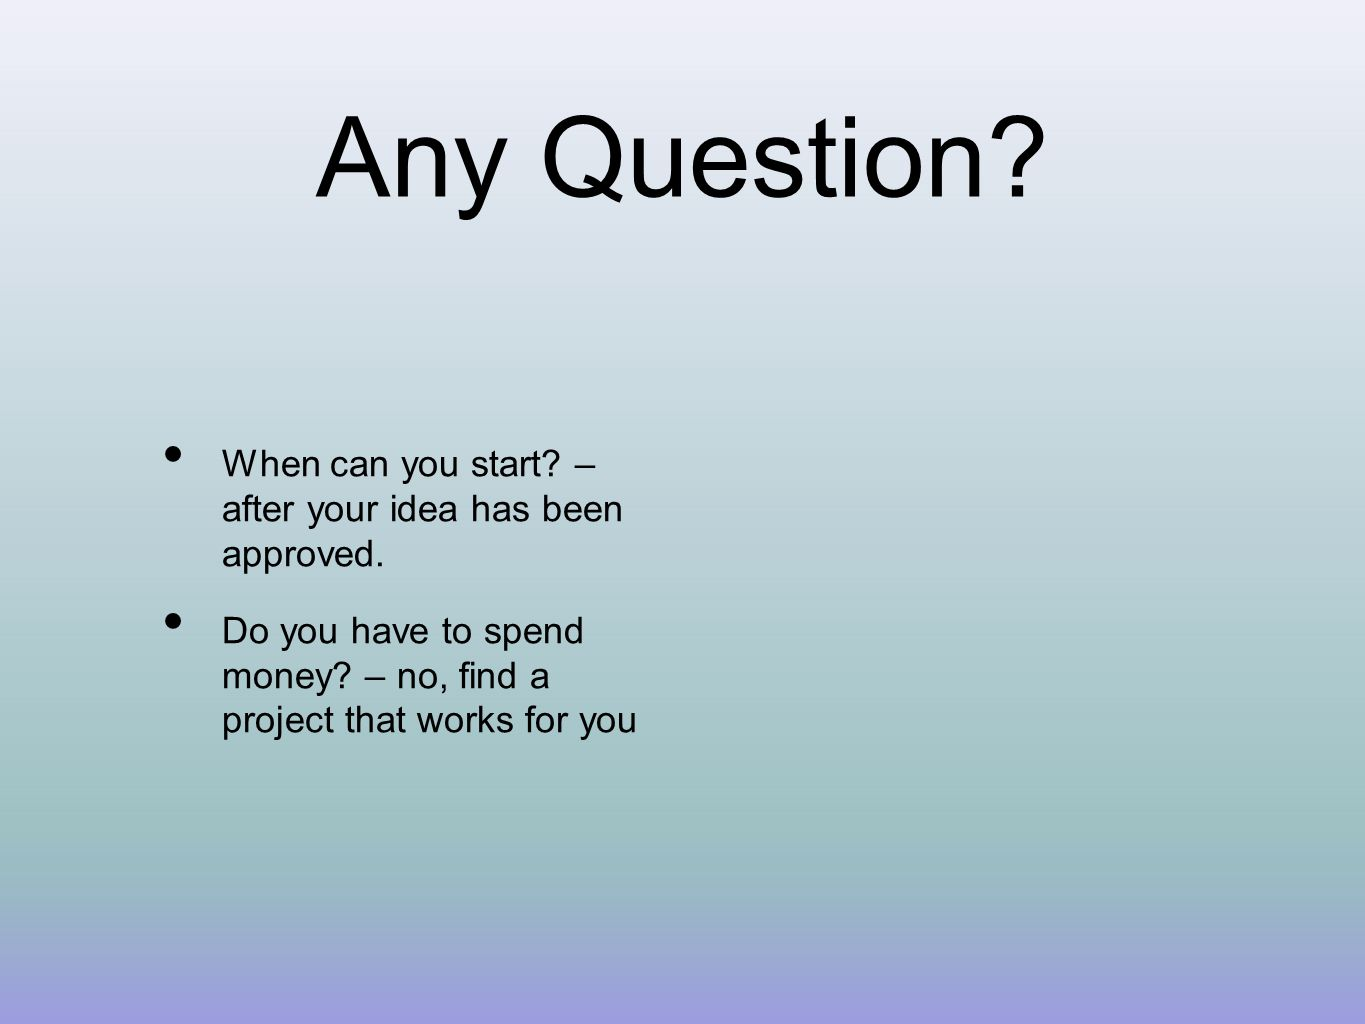 Any Question. When can you start. – after your idea has been approved.